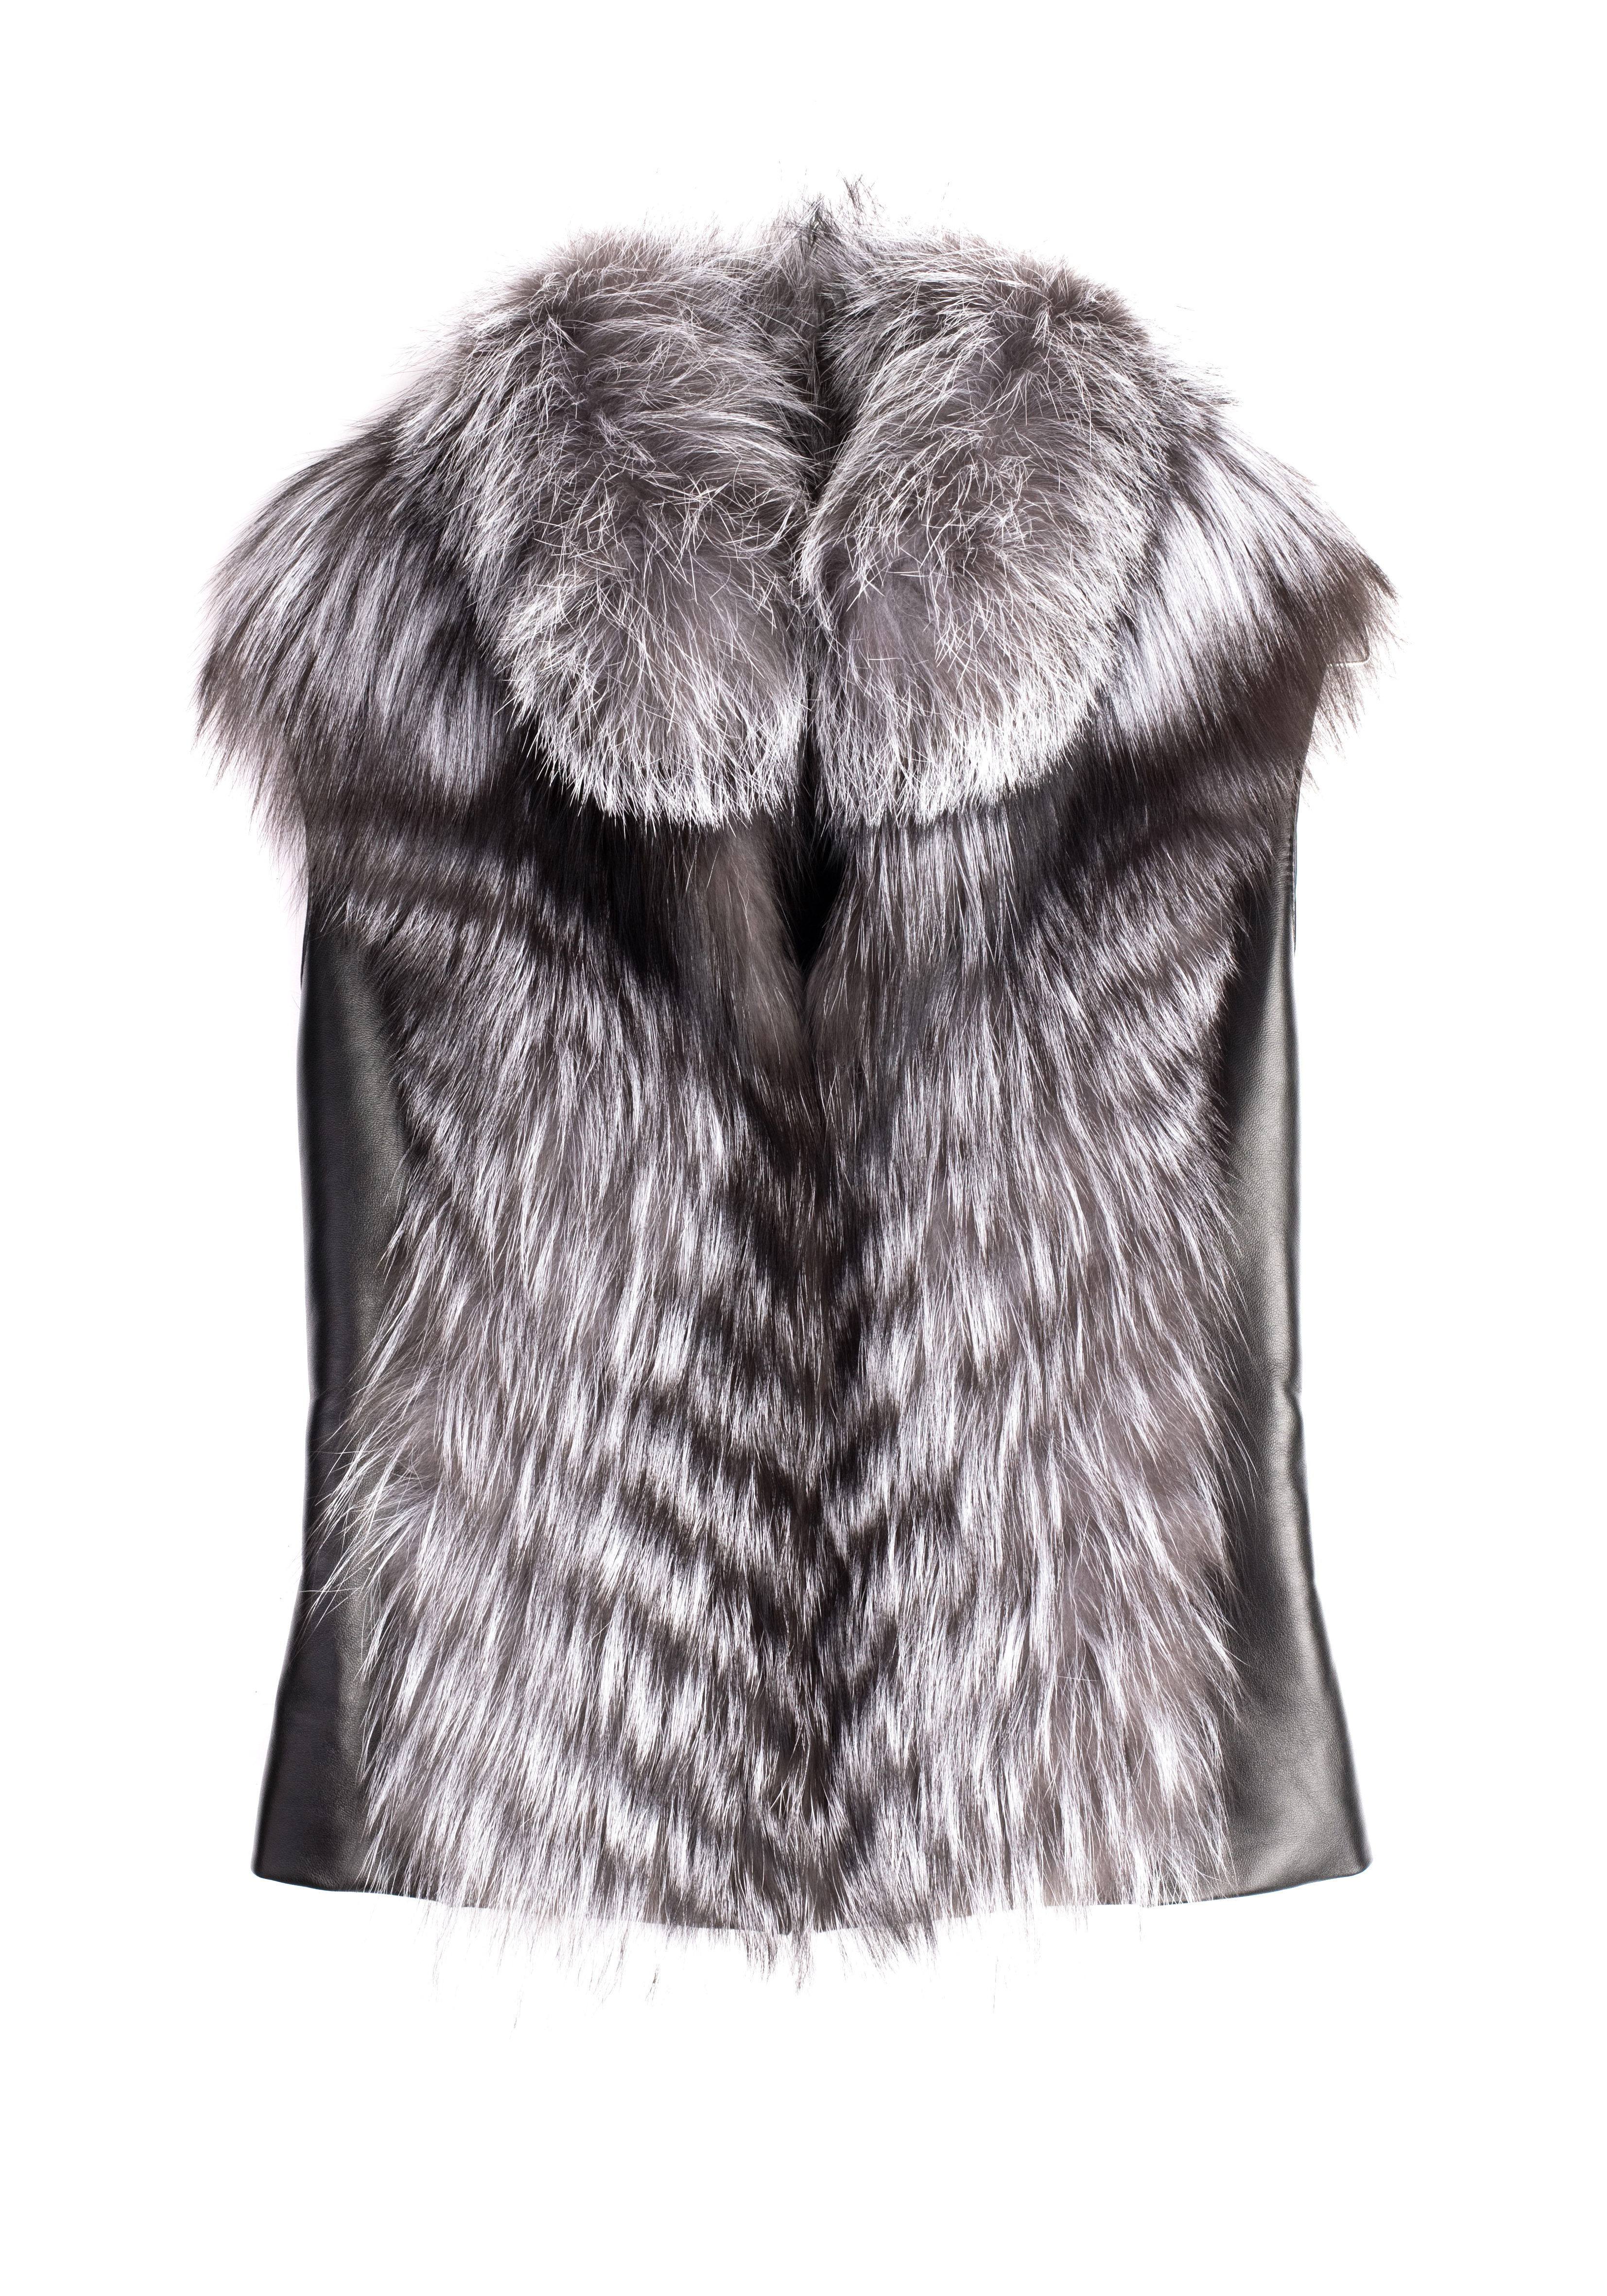 16b9c28fae1 Possum Skin Blanket Fur Coat Repair Service. How To A Fur Coat 10 Steps  With Pictures Wikihow